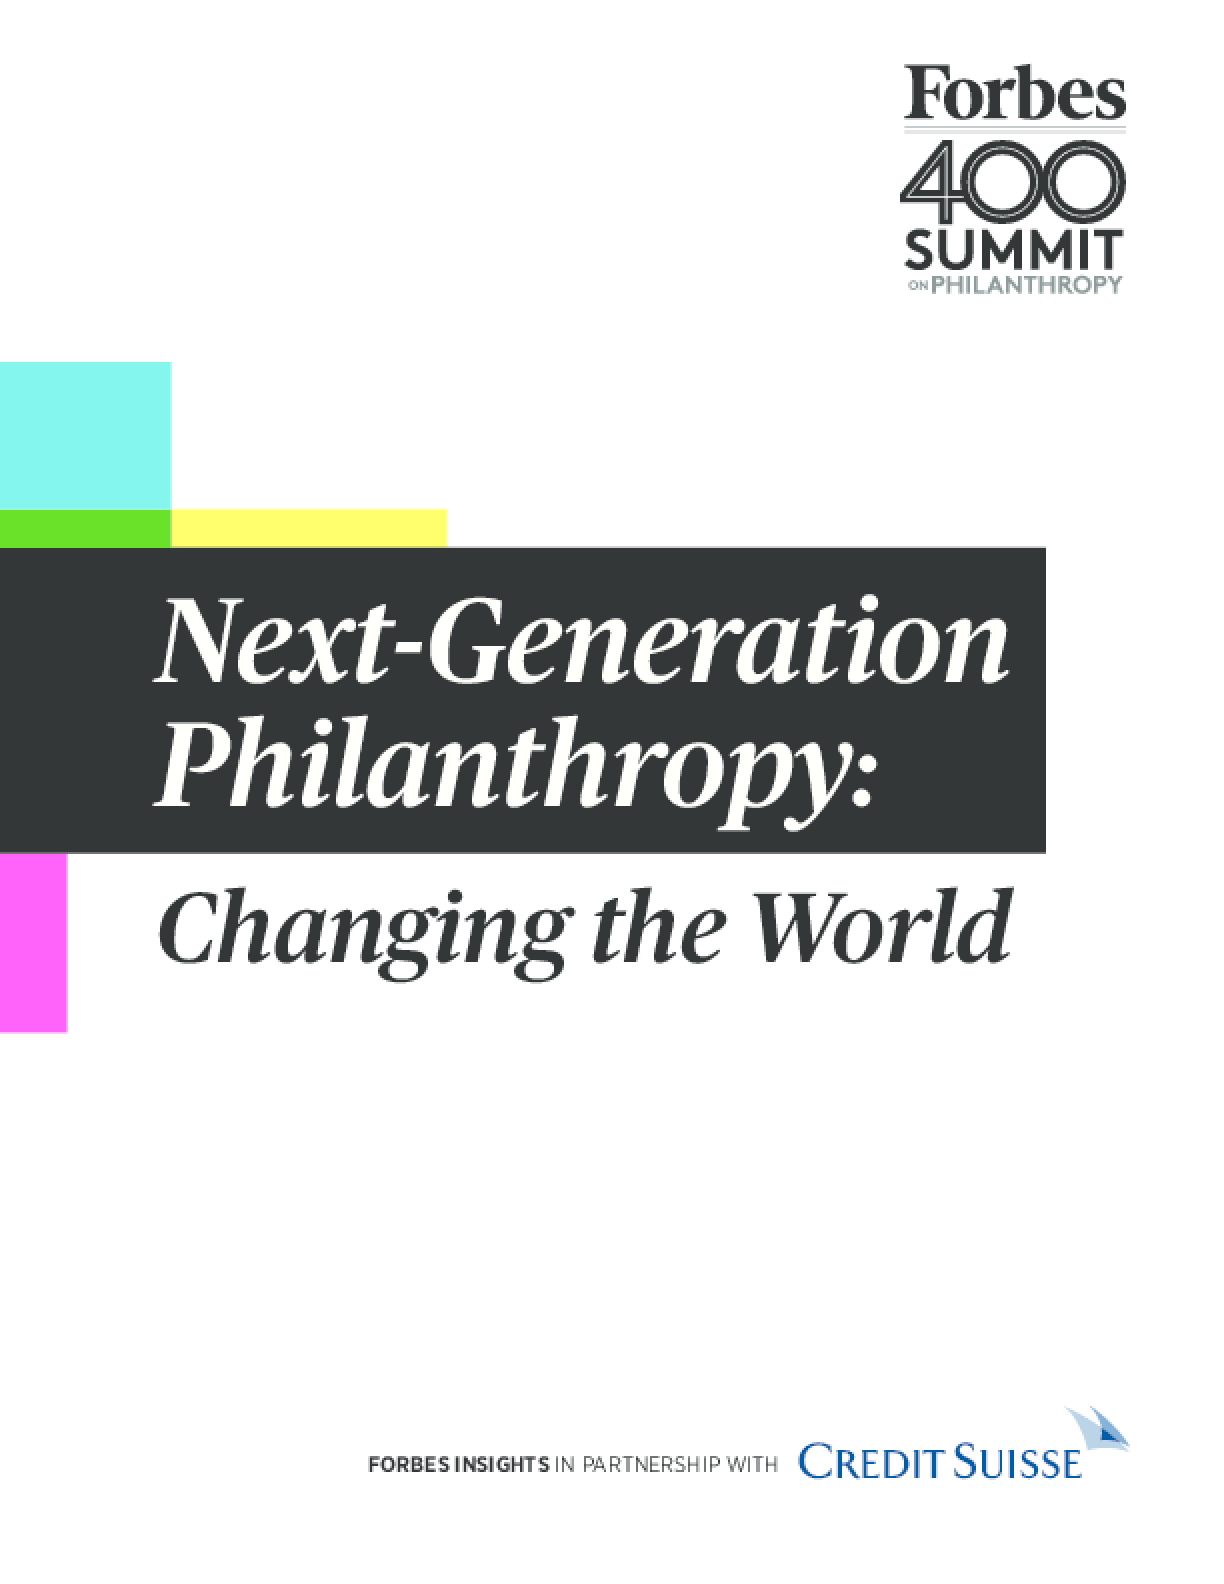 Next Generation Philanthropy: Changing the World